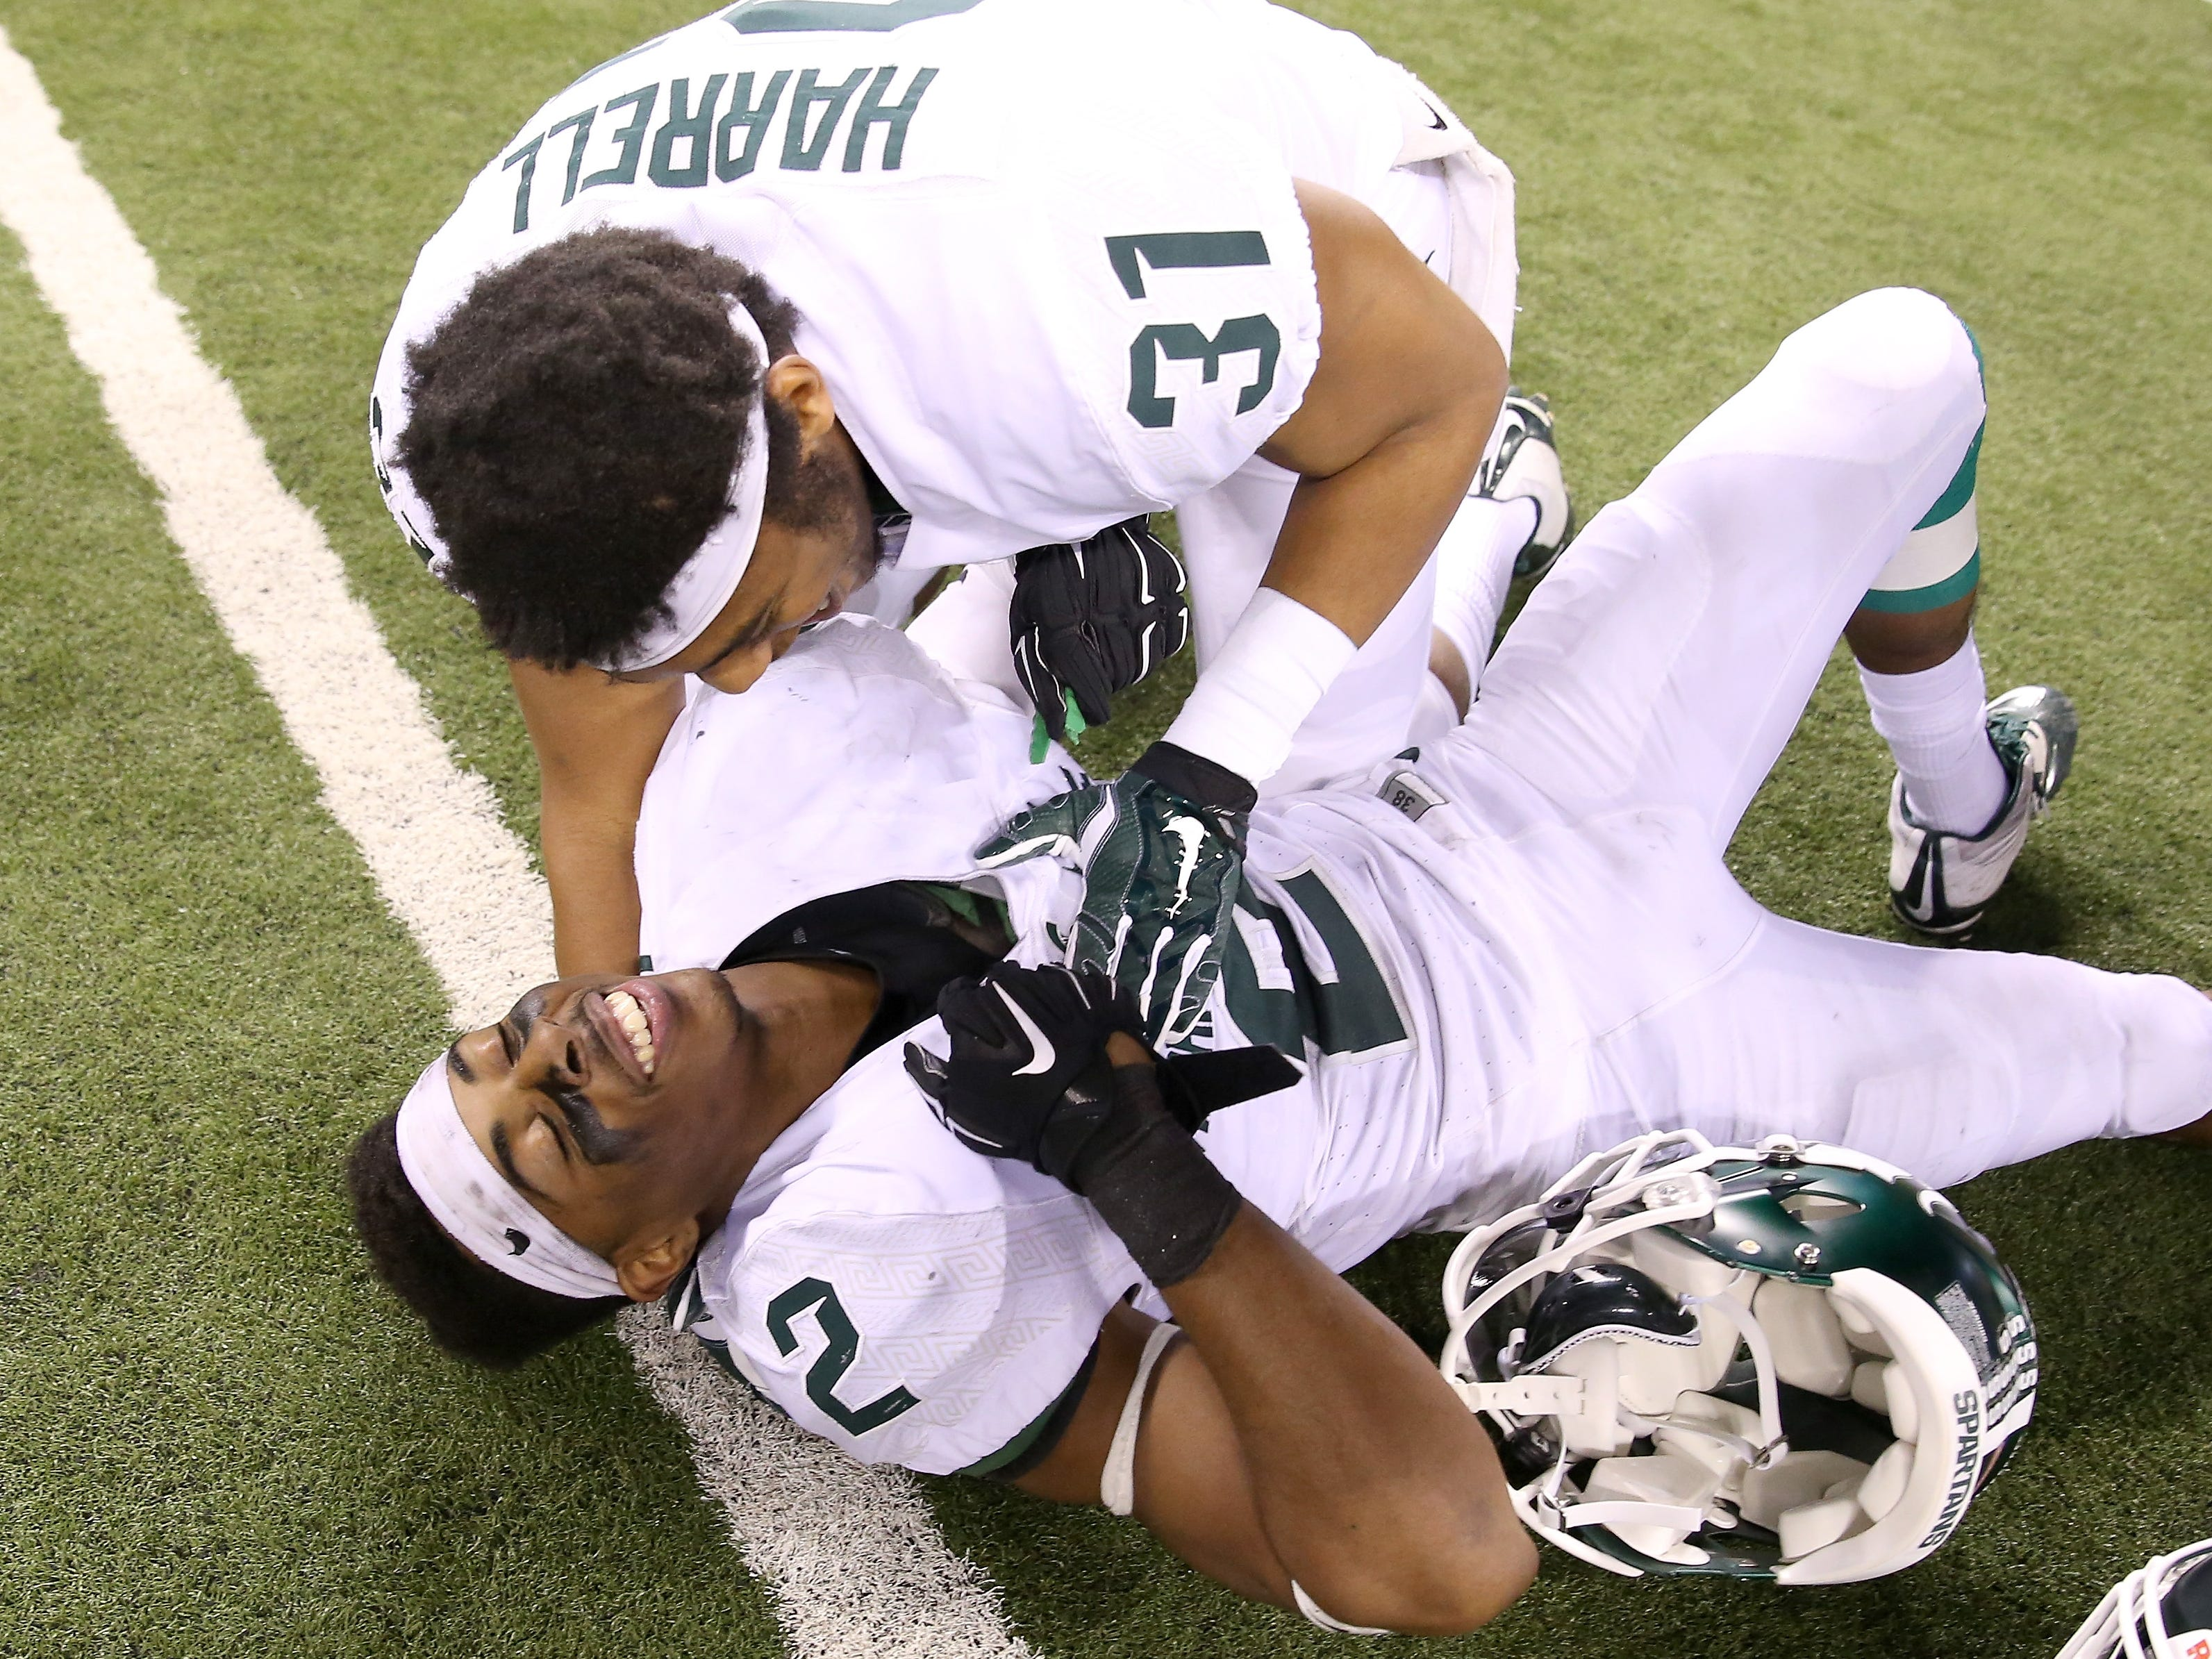 Dec. 5, 2015: No. 5 Michigan State 16, No. 4 Iowa 13 (Big Ten championship game): Darian Hicks (2) and T.J. Harrell celebrate the victory that earned the Spartans a spot in the College Football Playoffs.